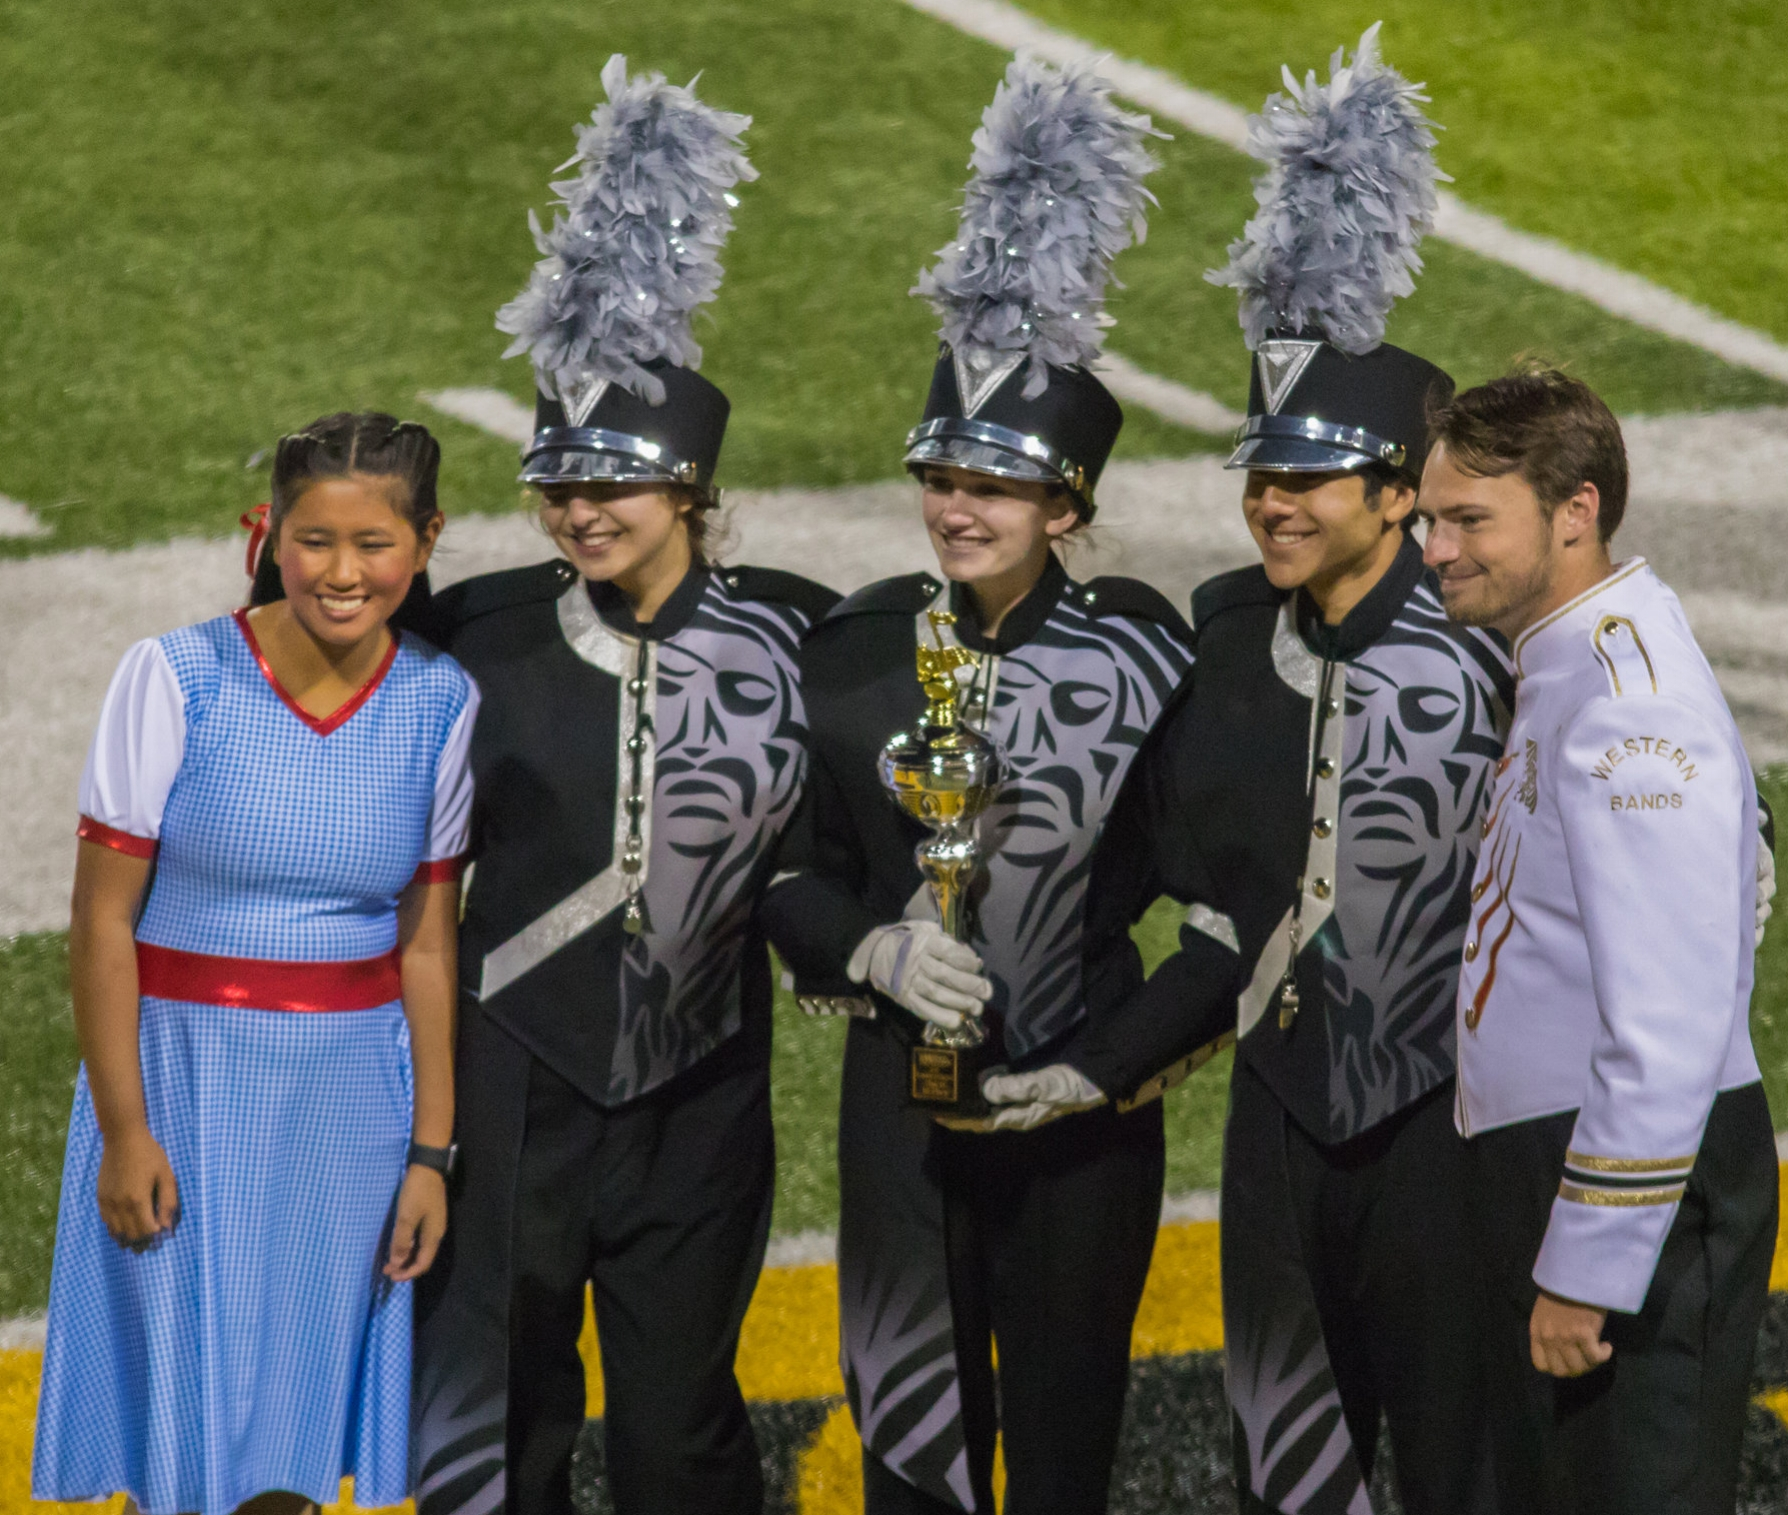 Contributed photo The Platte County Pirate Pride marching band performed its field show during the 32nd annual Missouri Western State University Tournament of Champions held at Spratt Stadium on Tuesday, Oct. 10 in St. Joseph, Mo.